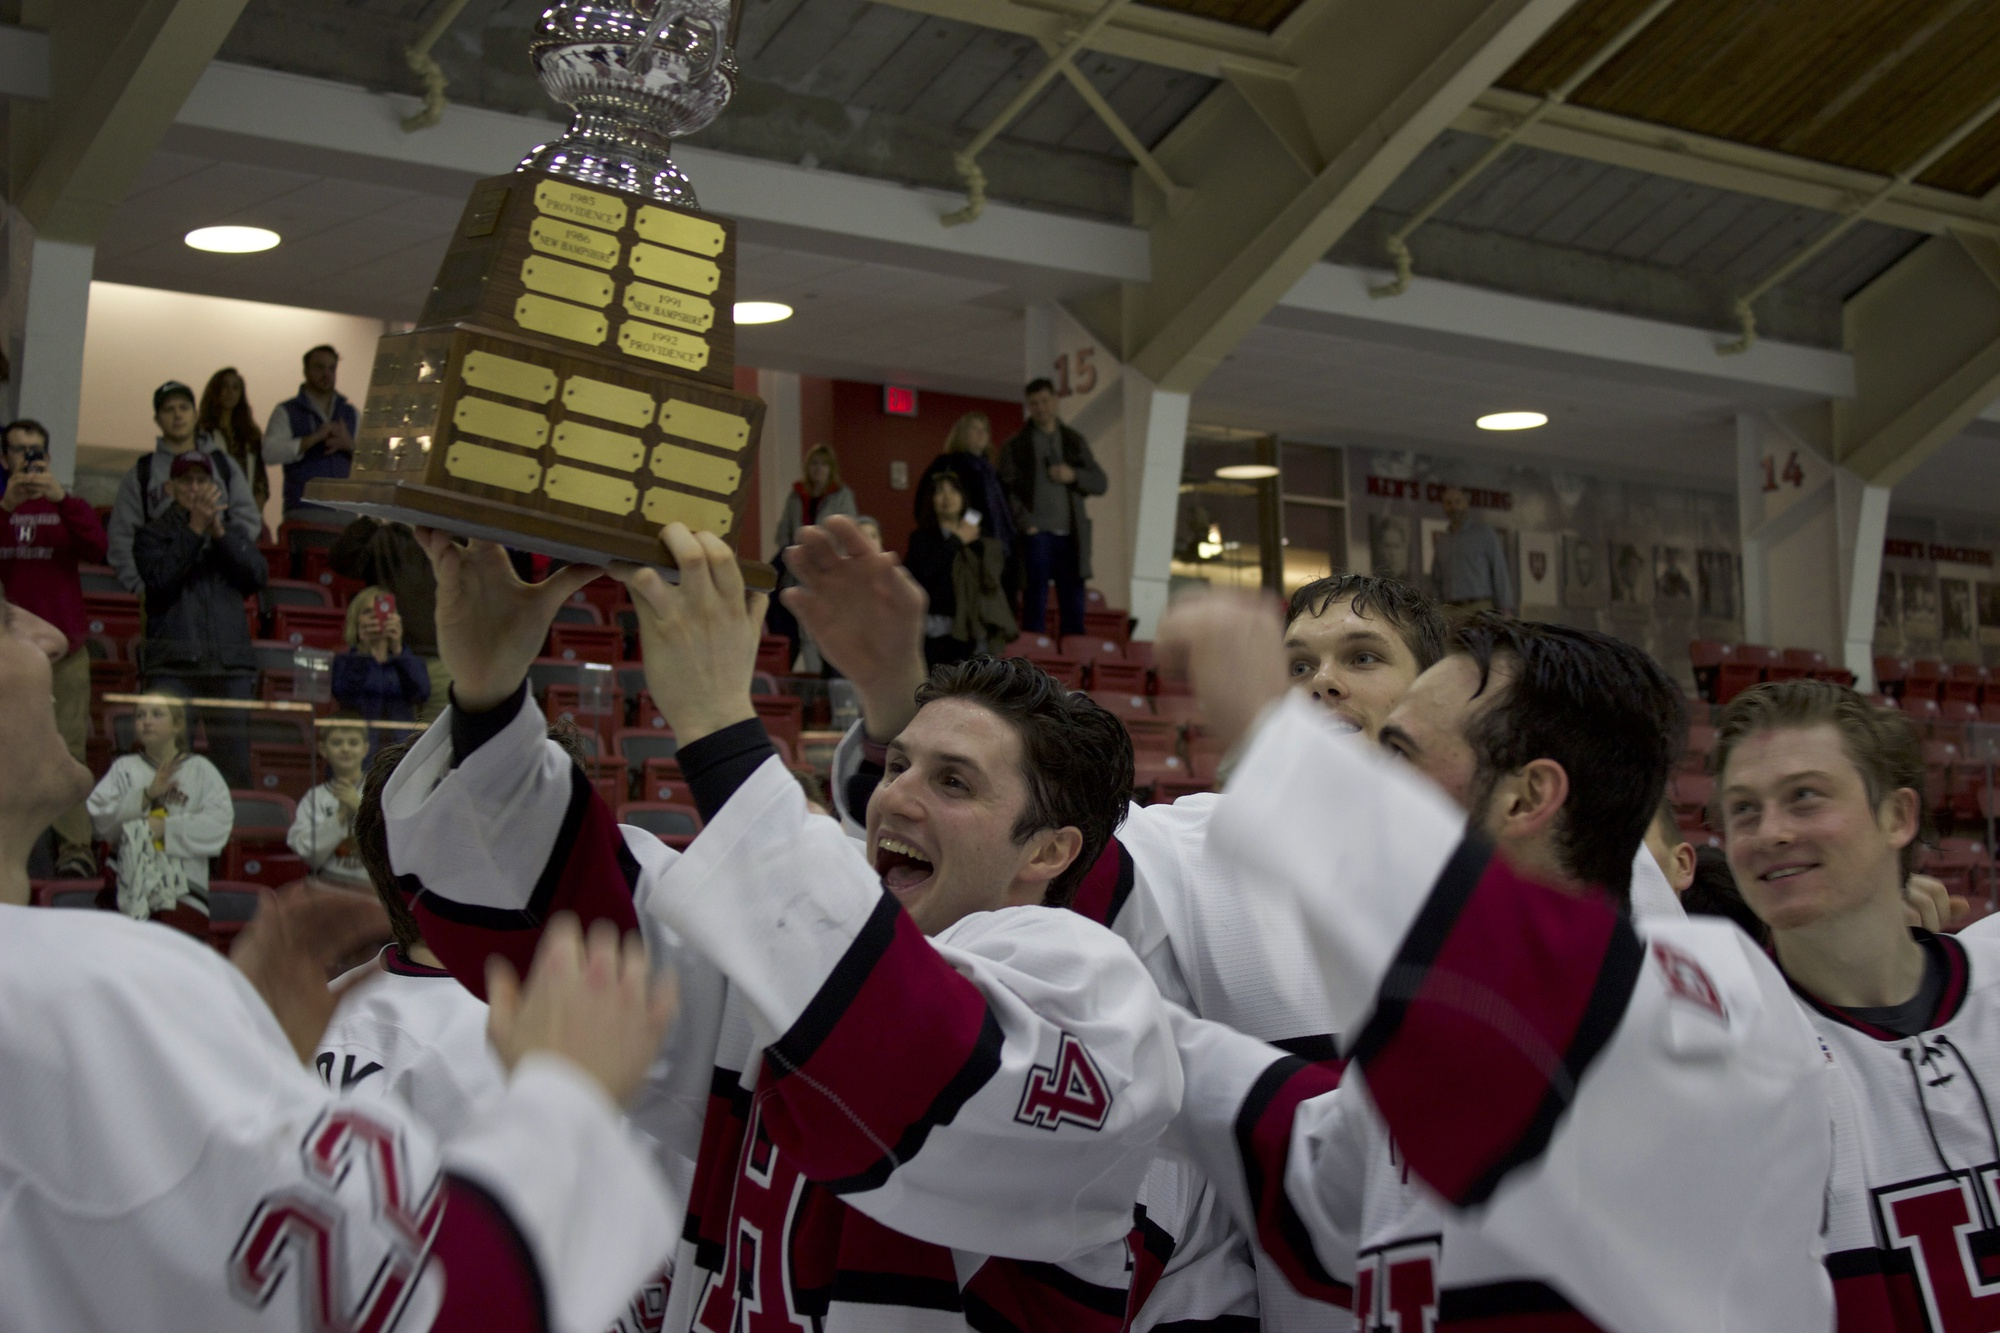 Co-captain Alexander Kerfoot celebrates with a stand-in replica for the Cleary Cup, given to the ECAC's regular season champion.